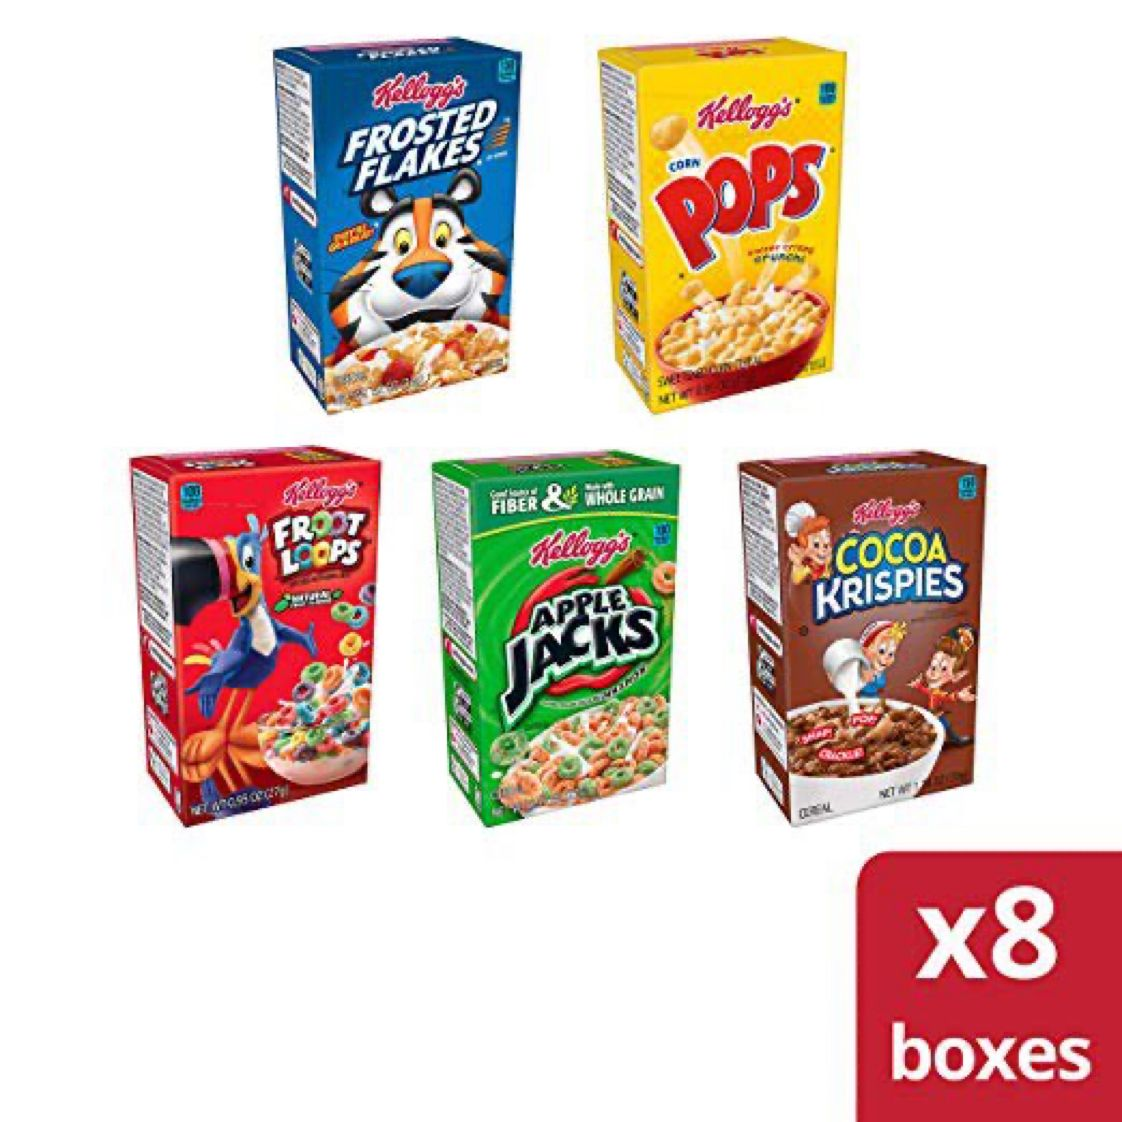 8 Boxes - Kellogg's Kids Cereal Fun Variety Pack  $2.98 with Free Prime Shipping   #steals #deals #stealsanddeals